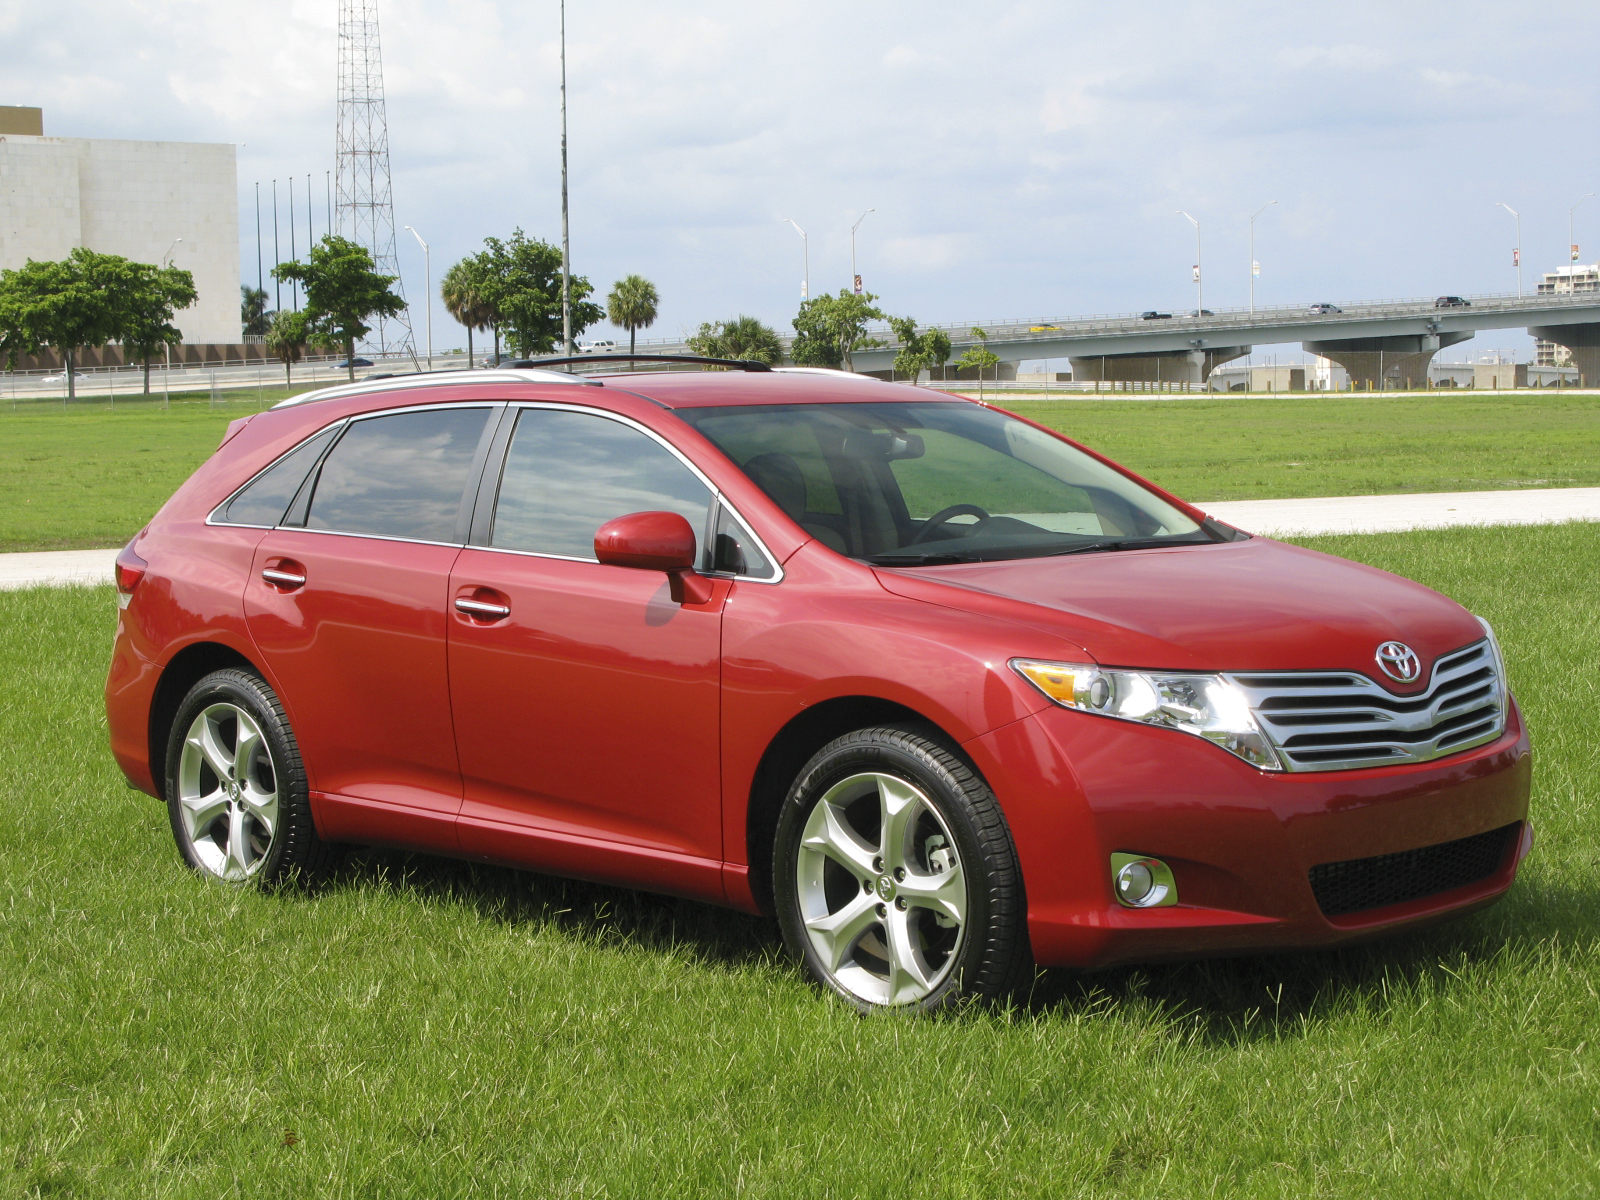 toyota track hr drive quick venza test c reviews cars view vs road video auto